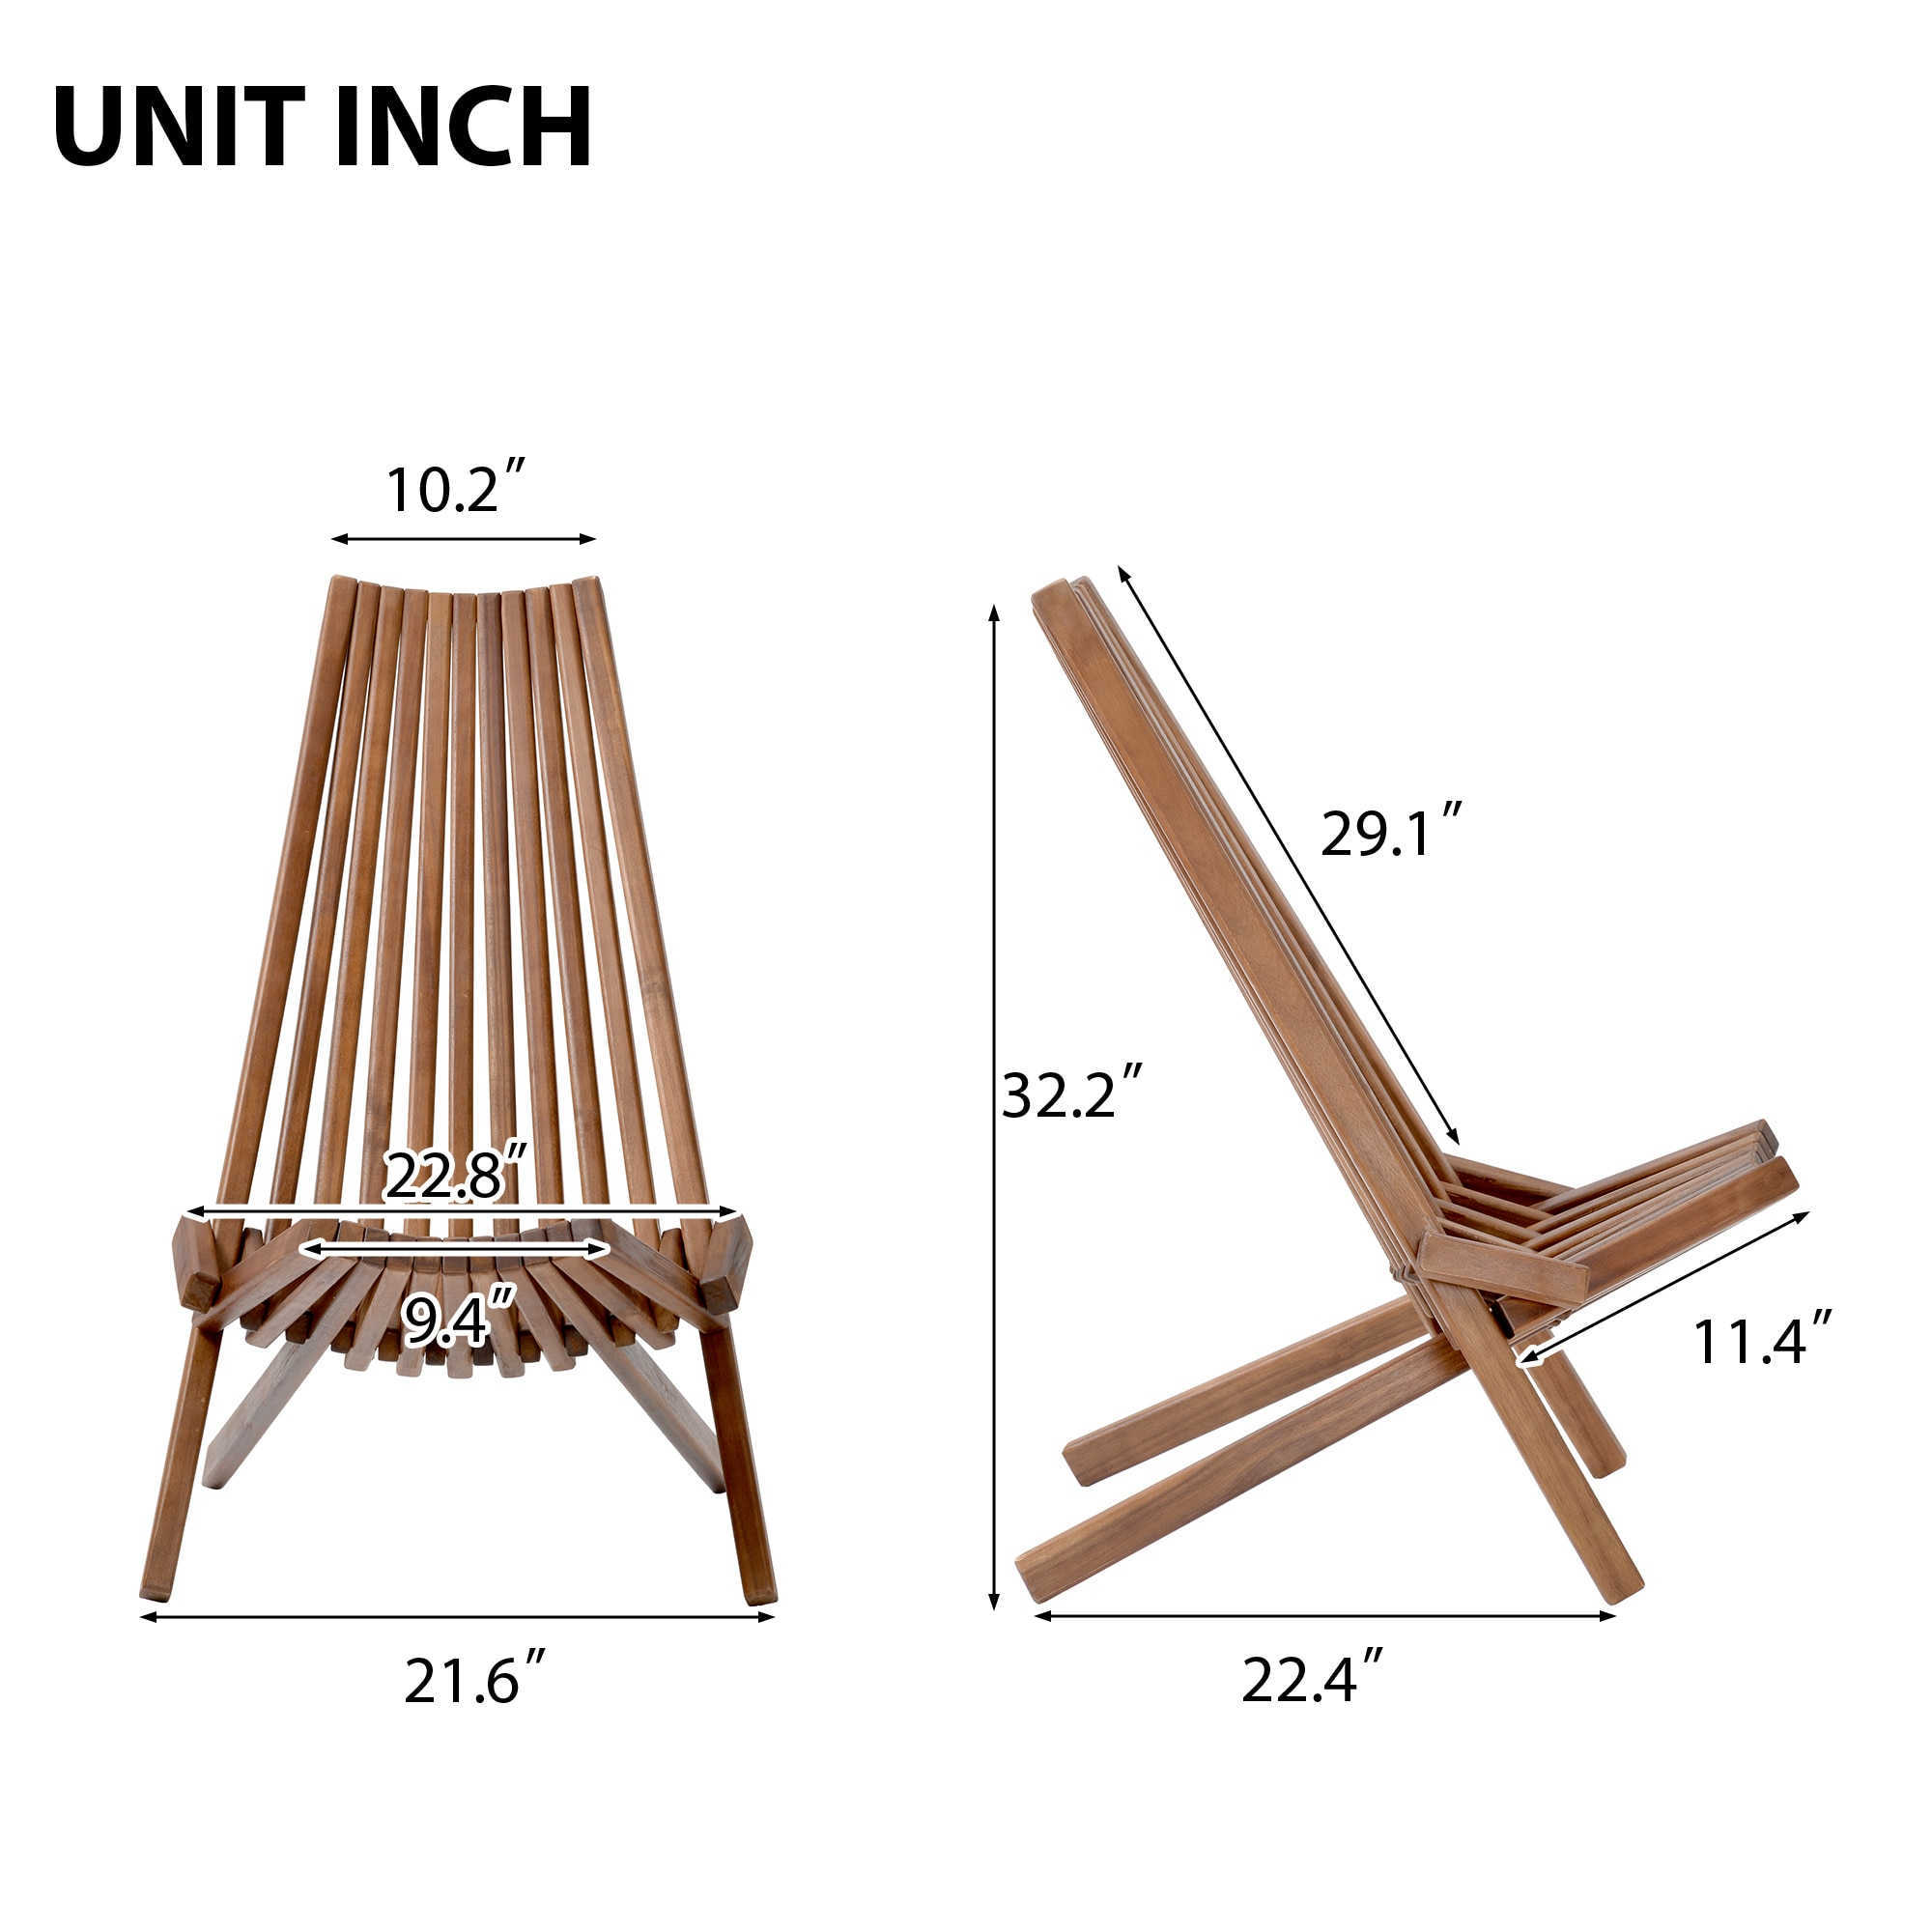 Outdoor Patio Furniture Folding Wood Chair Indoor Seating Garden Beach Accent Chaise Lounge Stylish Natural Finish